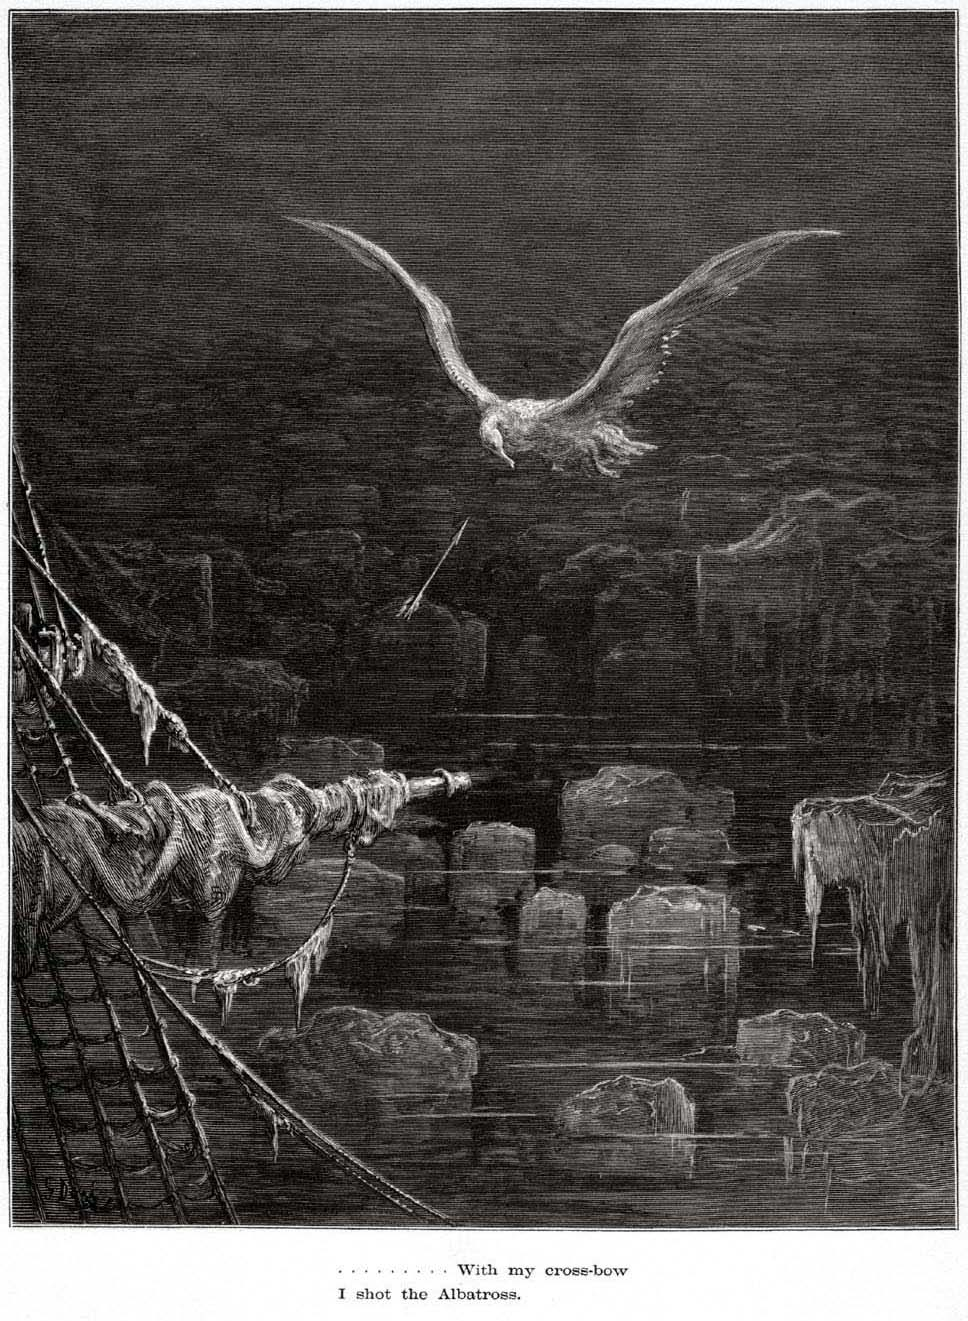 Gustave Doré, Ancient Mariner. I shot the albatross